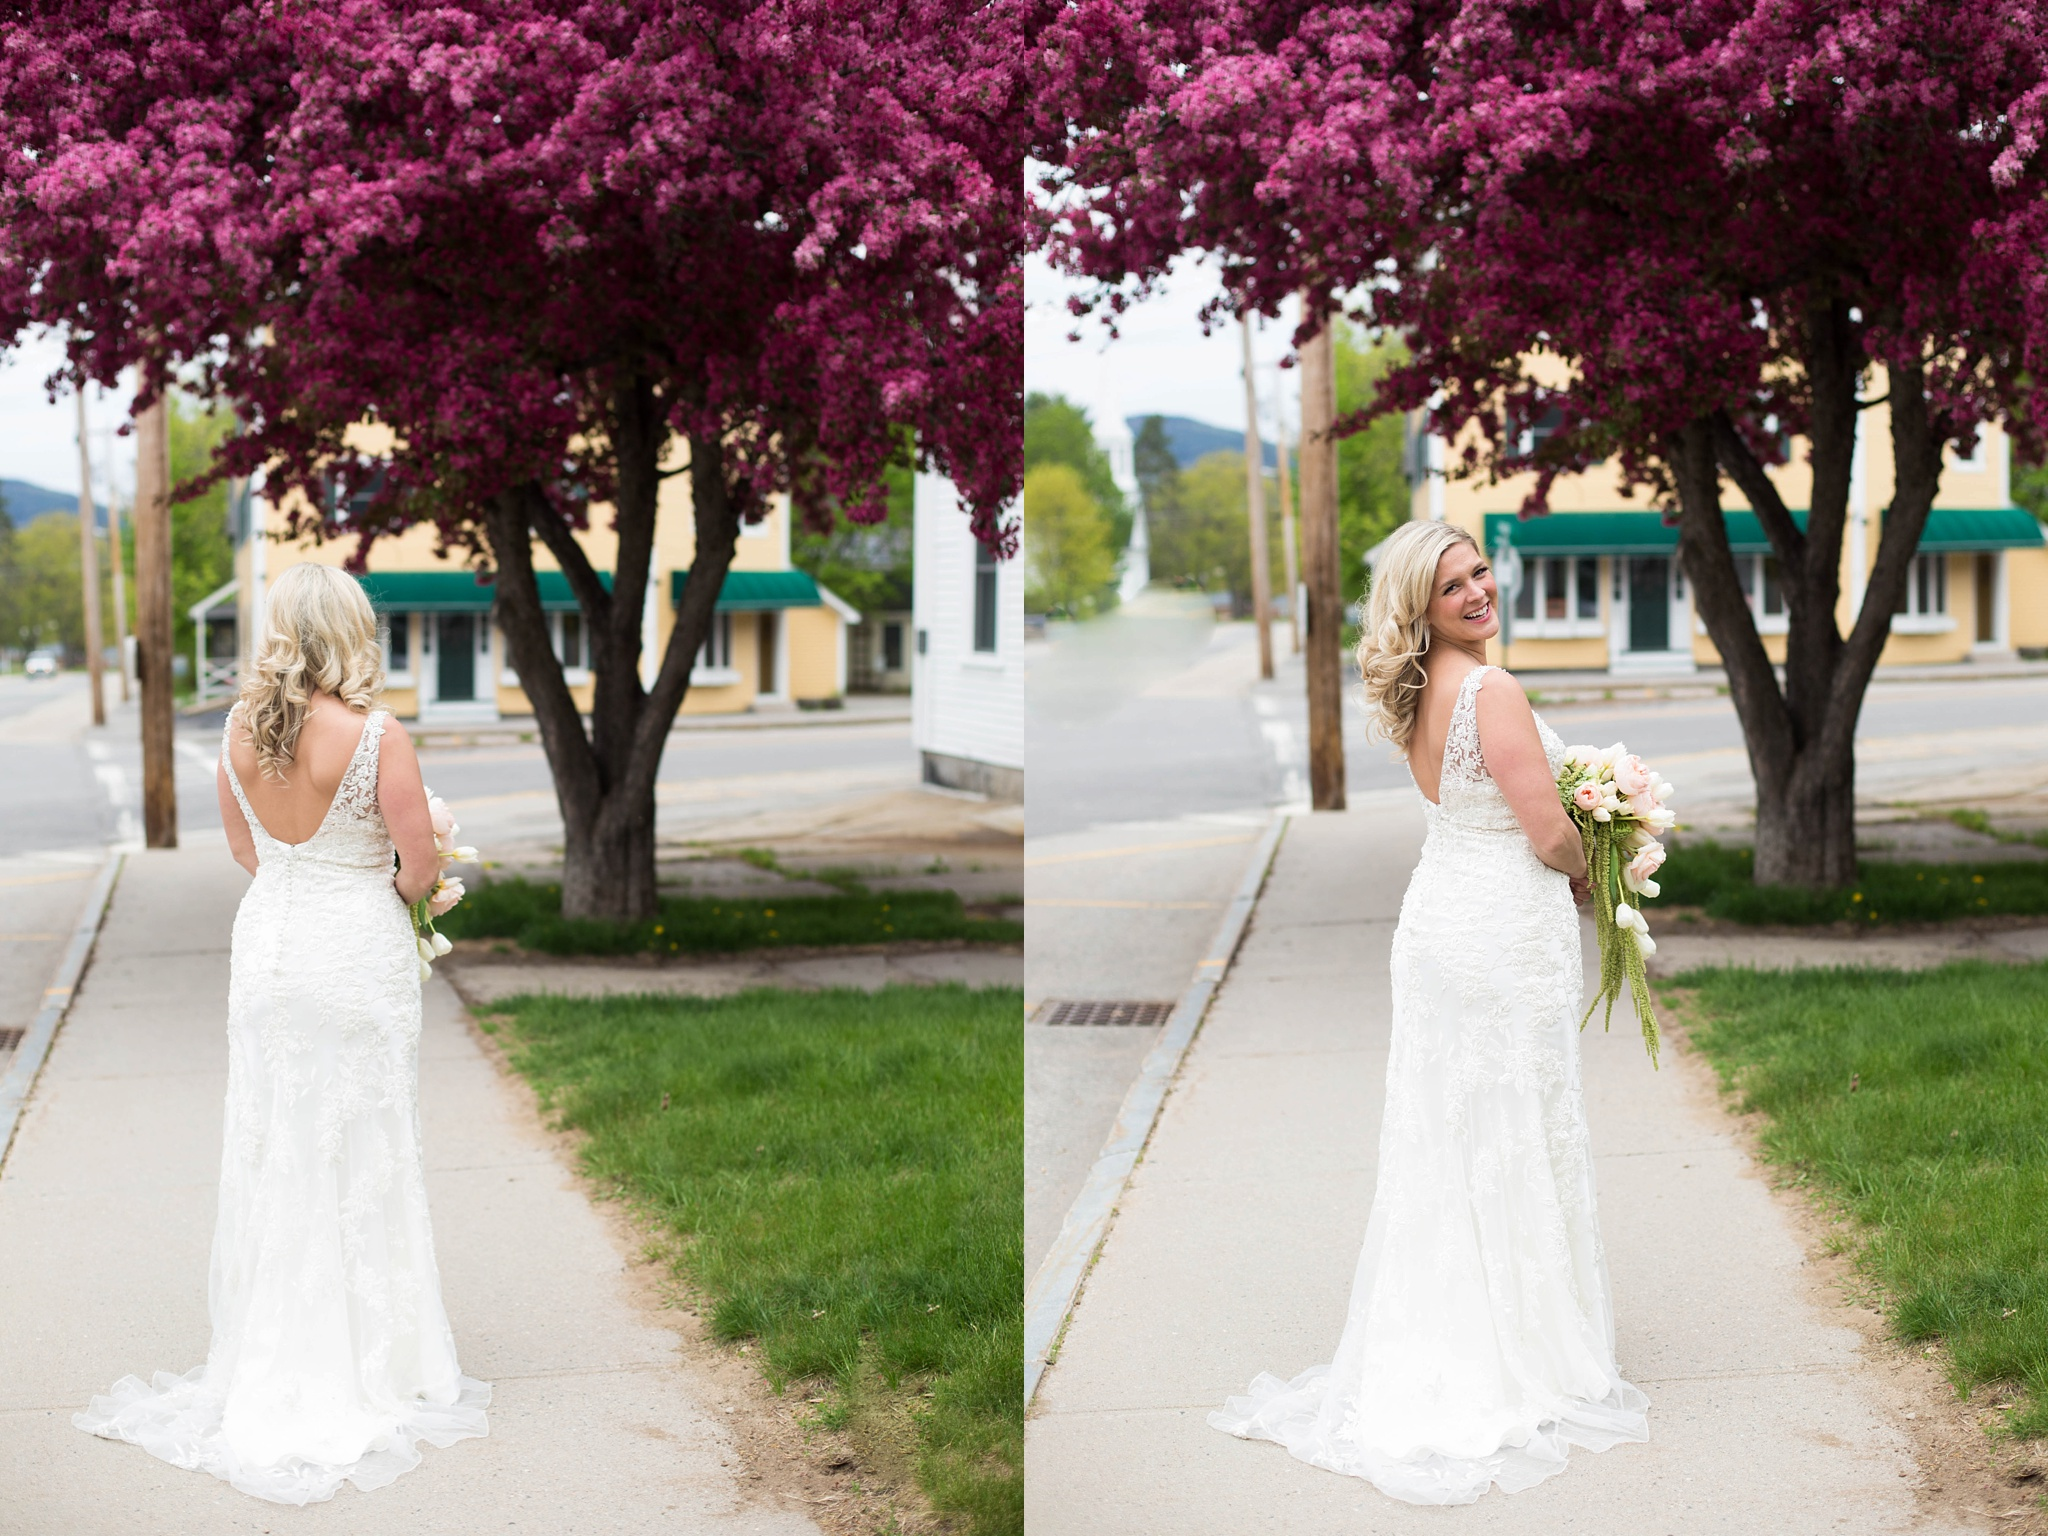 Spring time bridal portraits